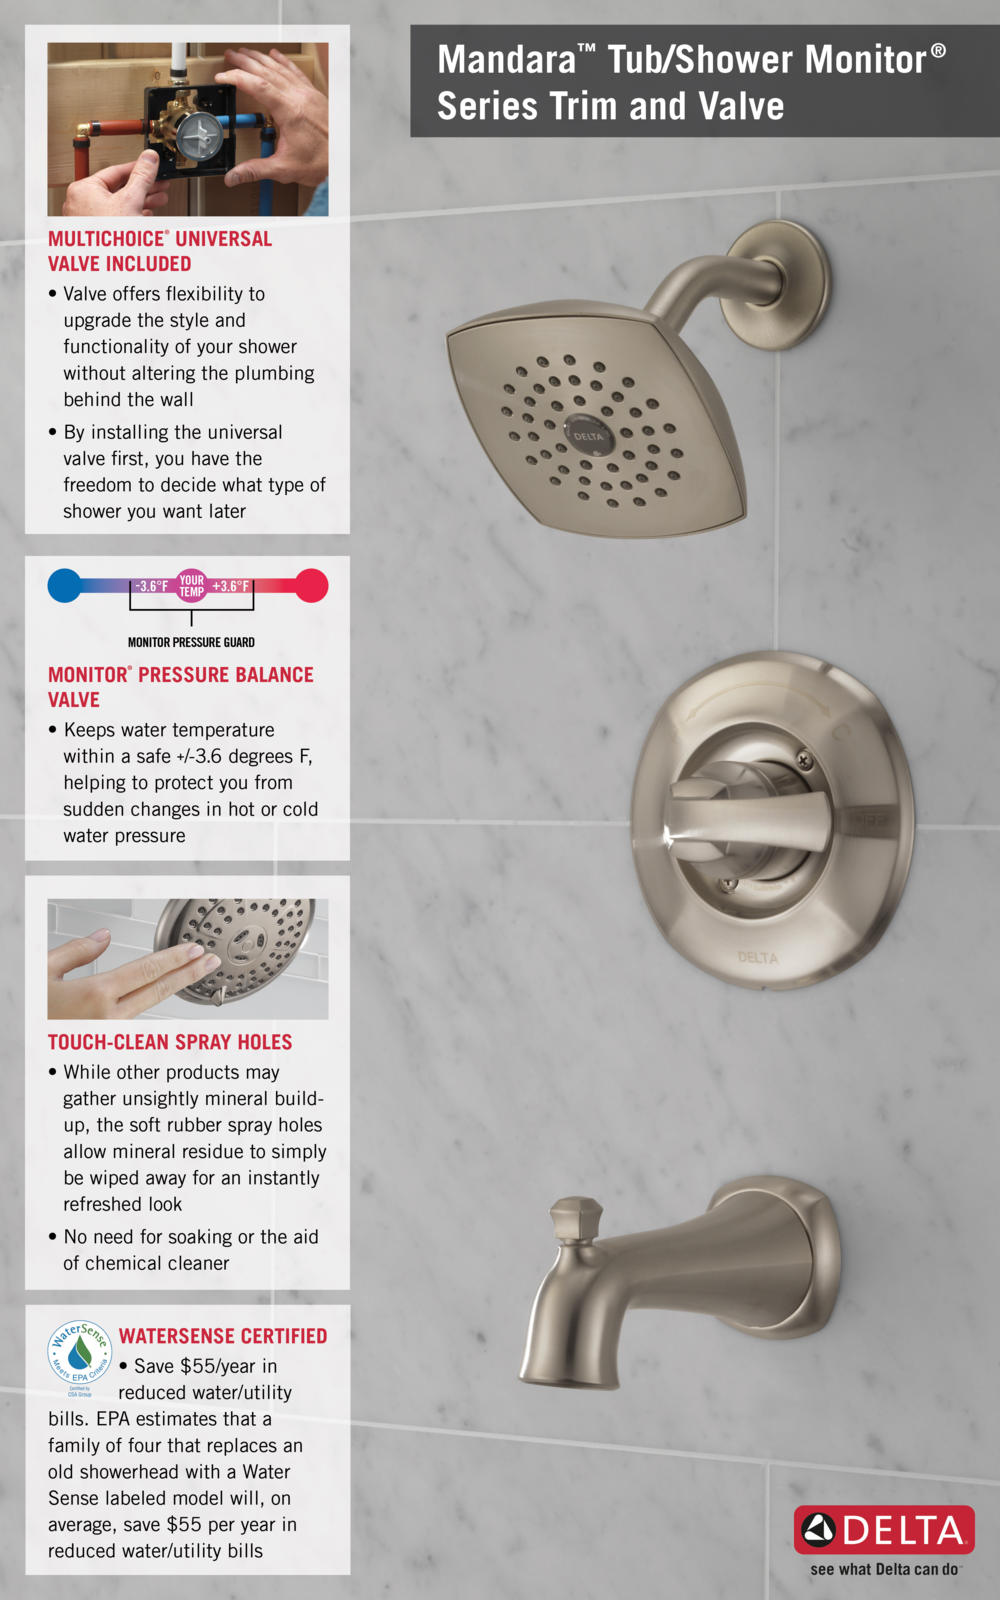 Home Depot Faucet 144962-SS T14 Shower with Valve Infographic